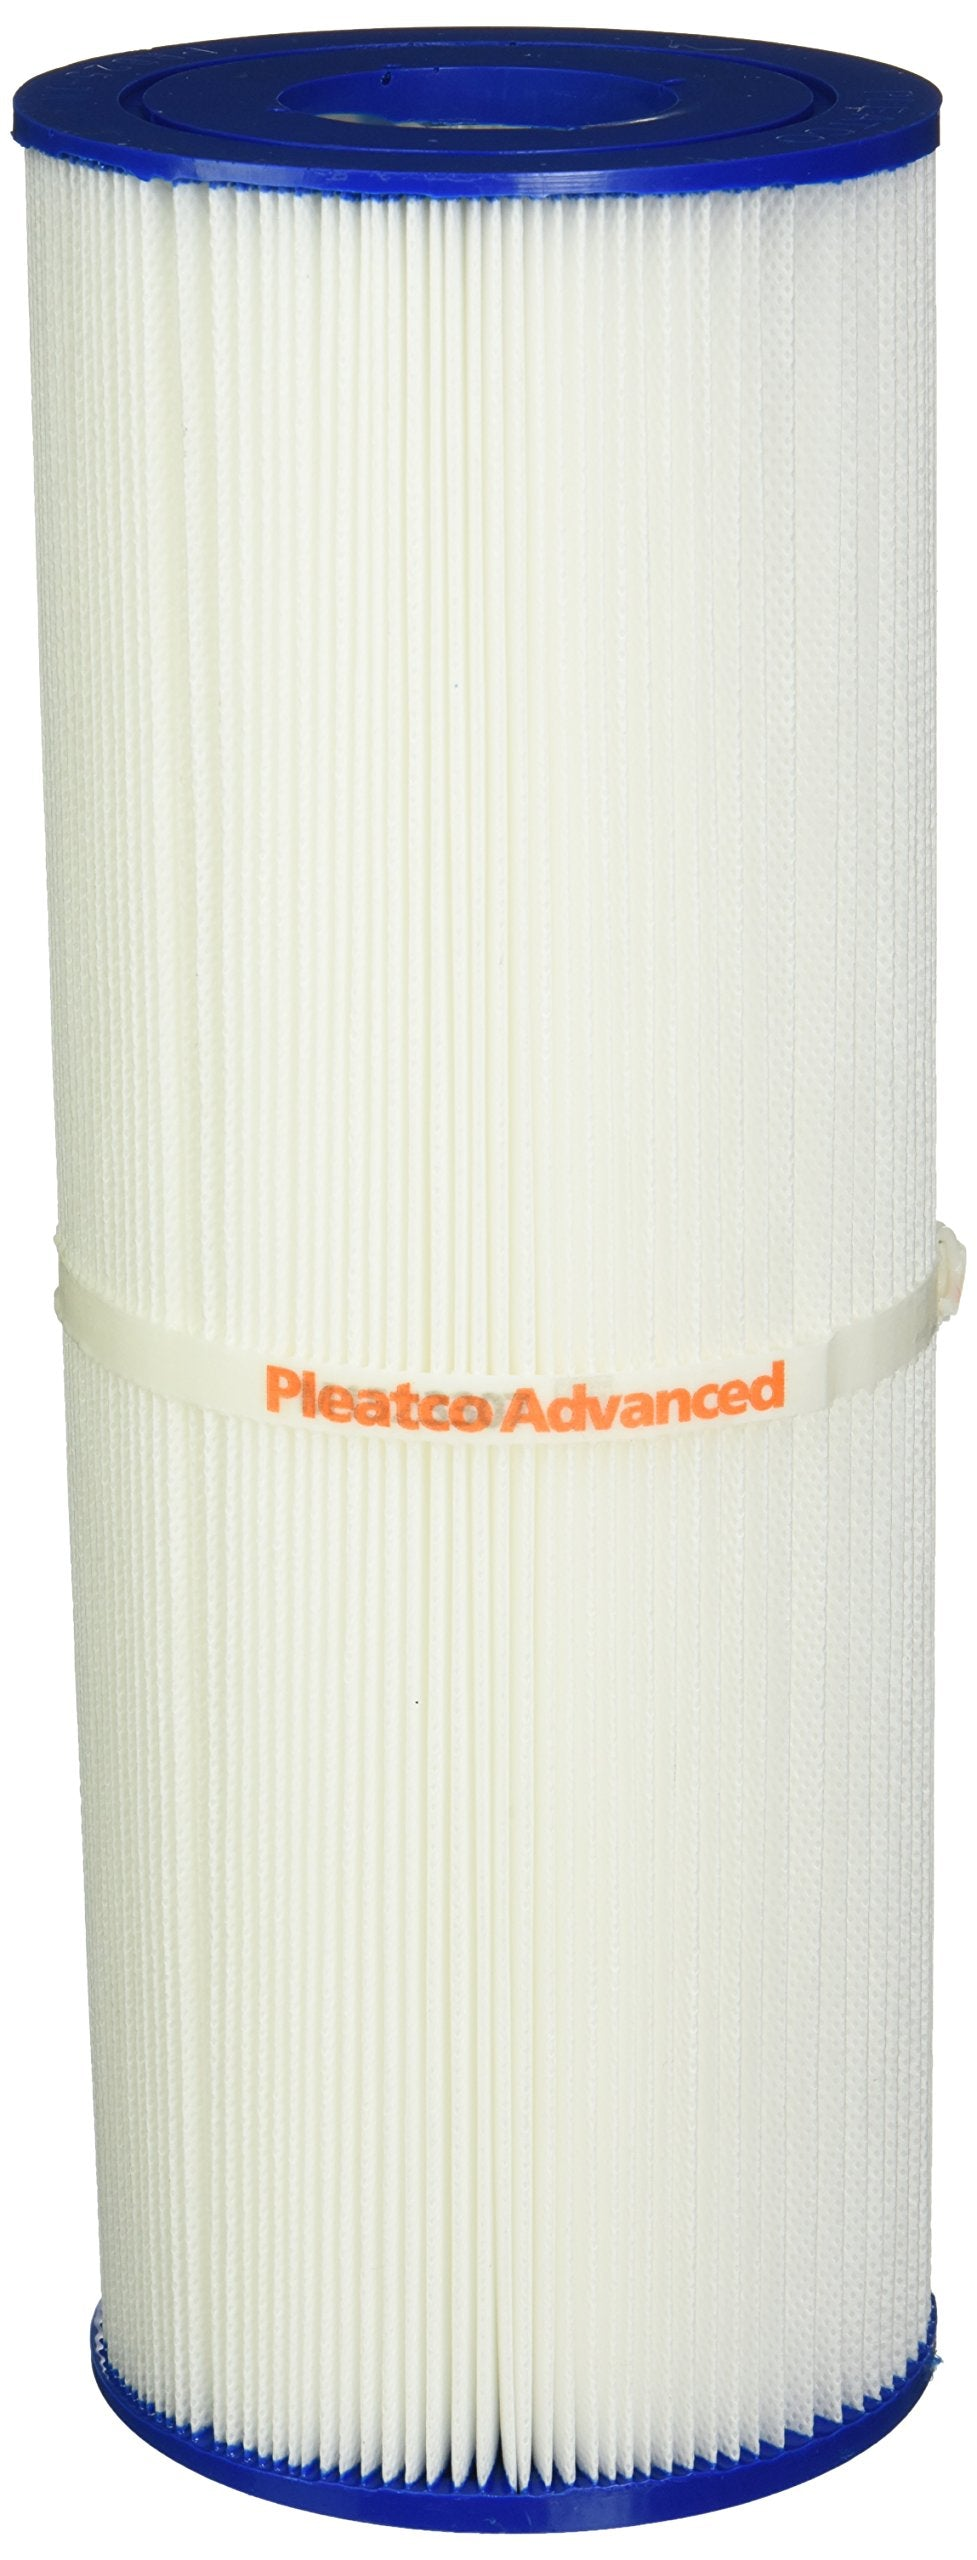 Pool/Spa Filter Cartridge Pleatco PRB25-IN Replaces Unicel C-4326/Filbur FC-2375/Rainbow Dynamic 25 1-Pack